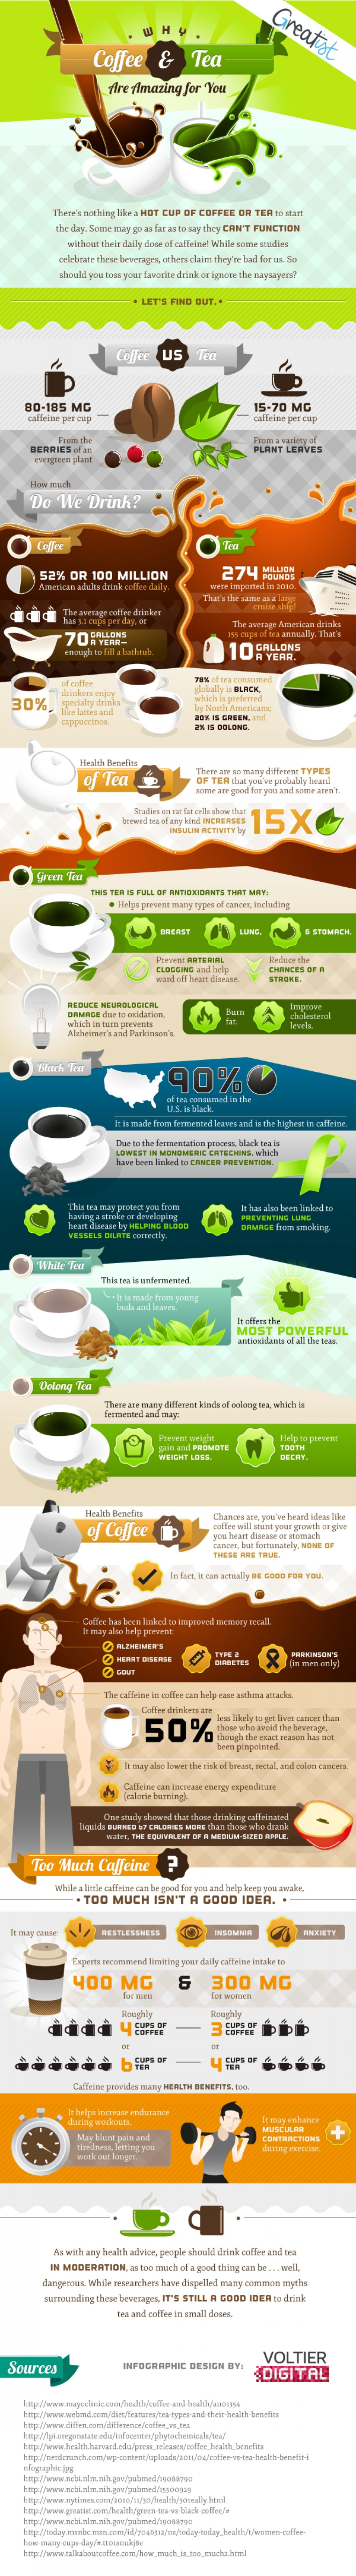 Coffee and tea health comparison